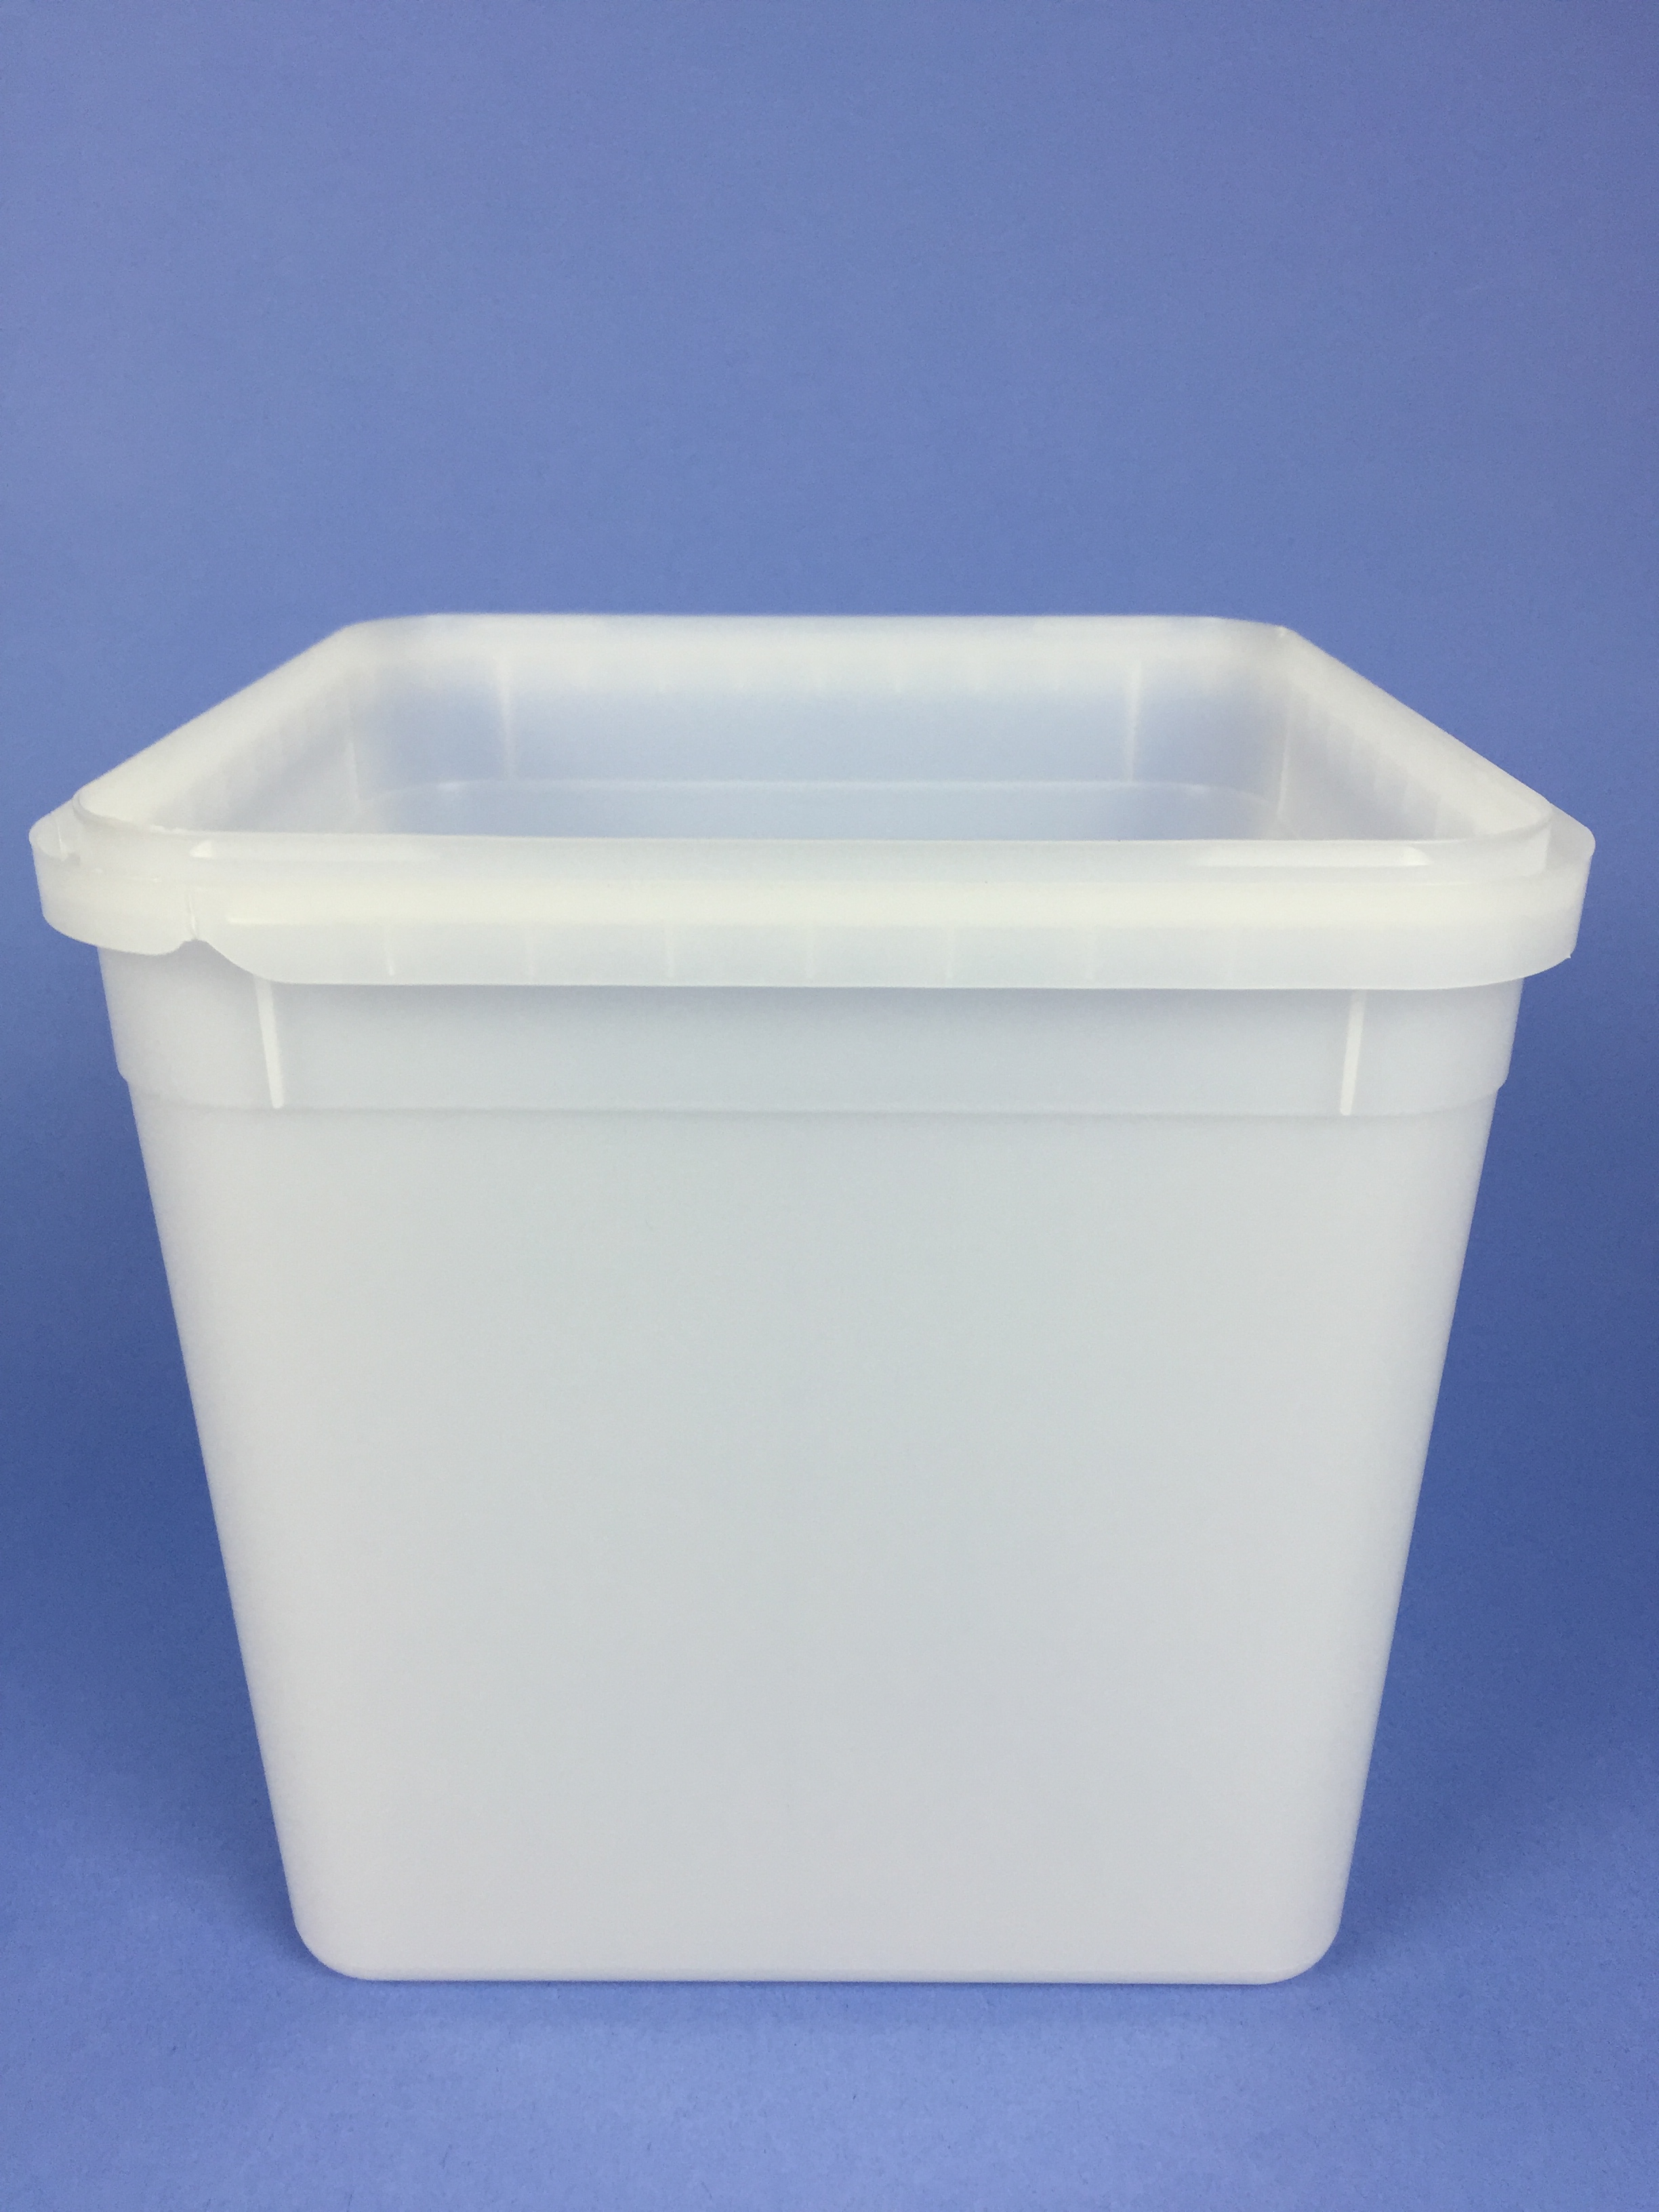 Pc4sqte 4 Litre Square Icecream Container Bristol